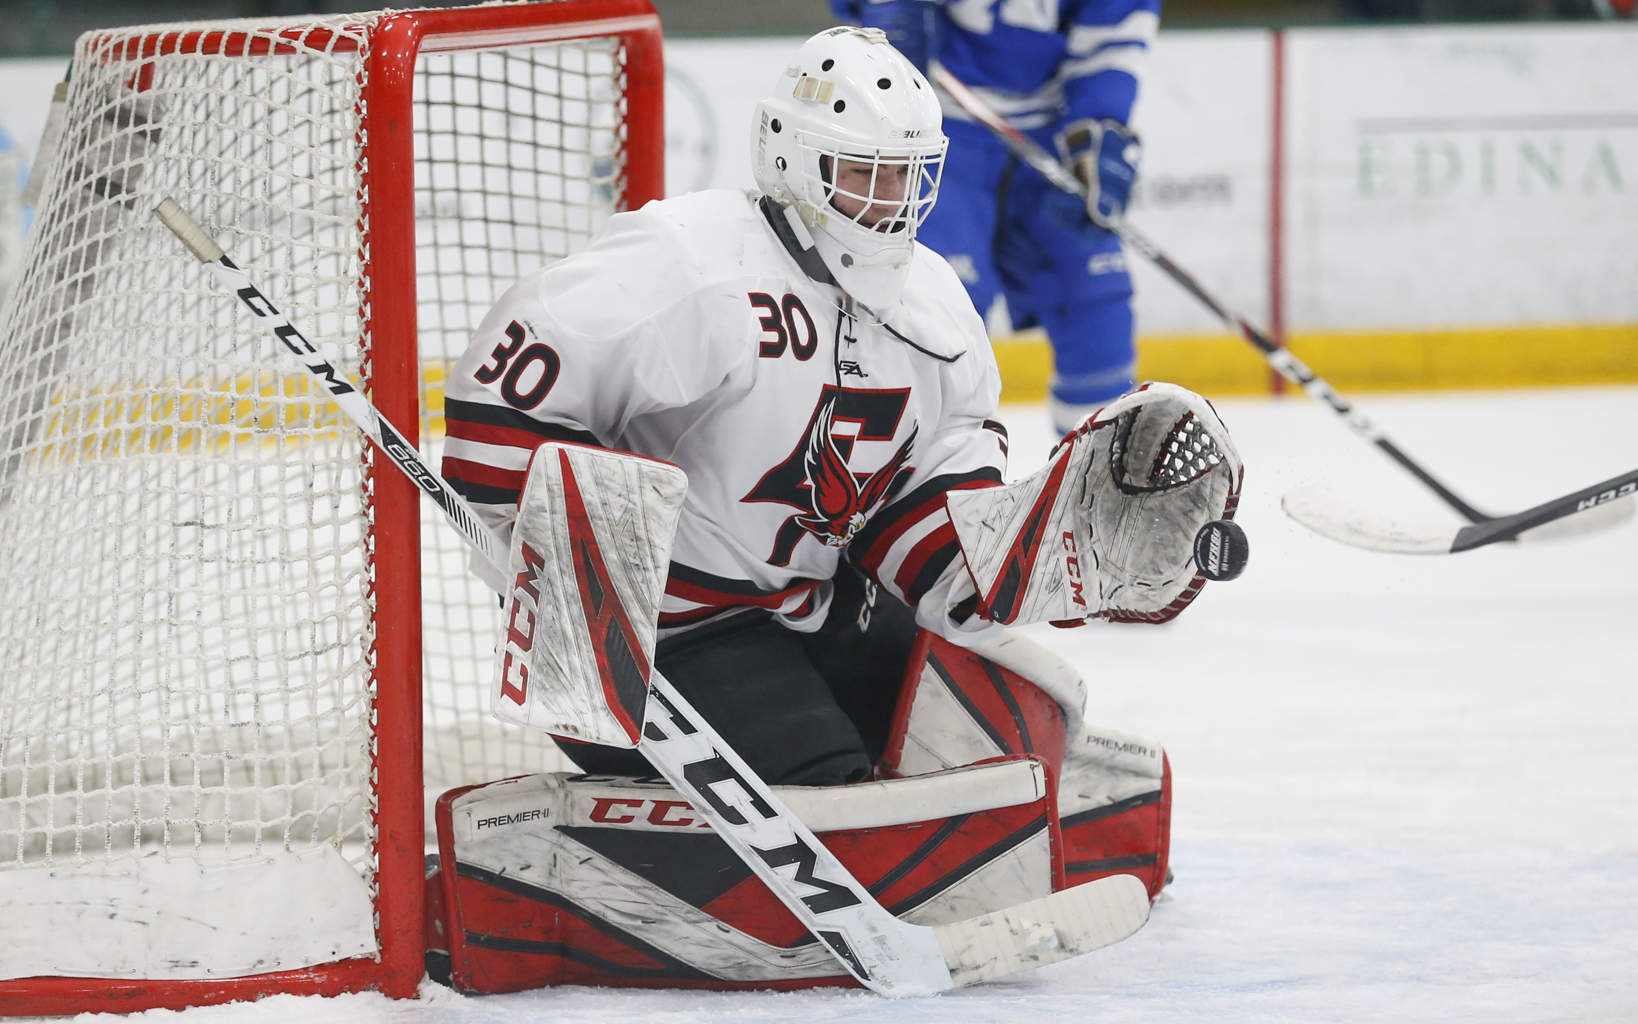 Eden Prairie's Axel Rosenlund (30) makes a glove save late in the third period against Minnetonka. Rosenlund had 24 saves in the Eagles' 6-1 victory over the Skippers. Photo by Jeff Lawler, SportsEngine